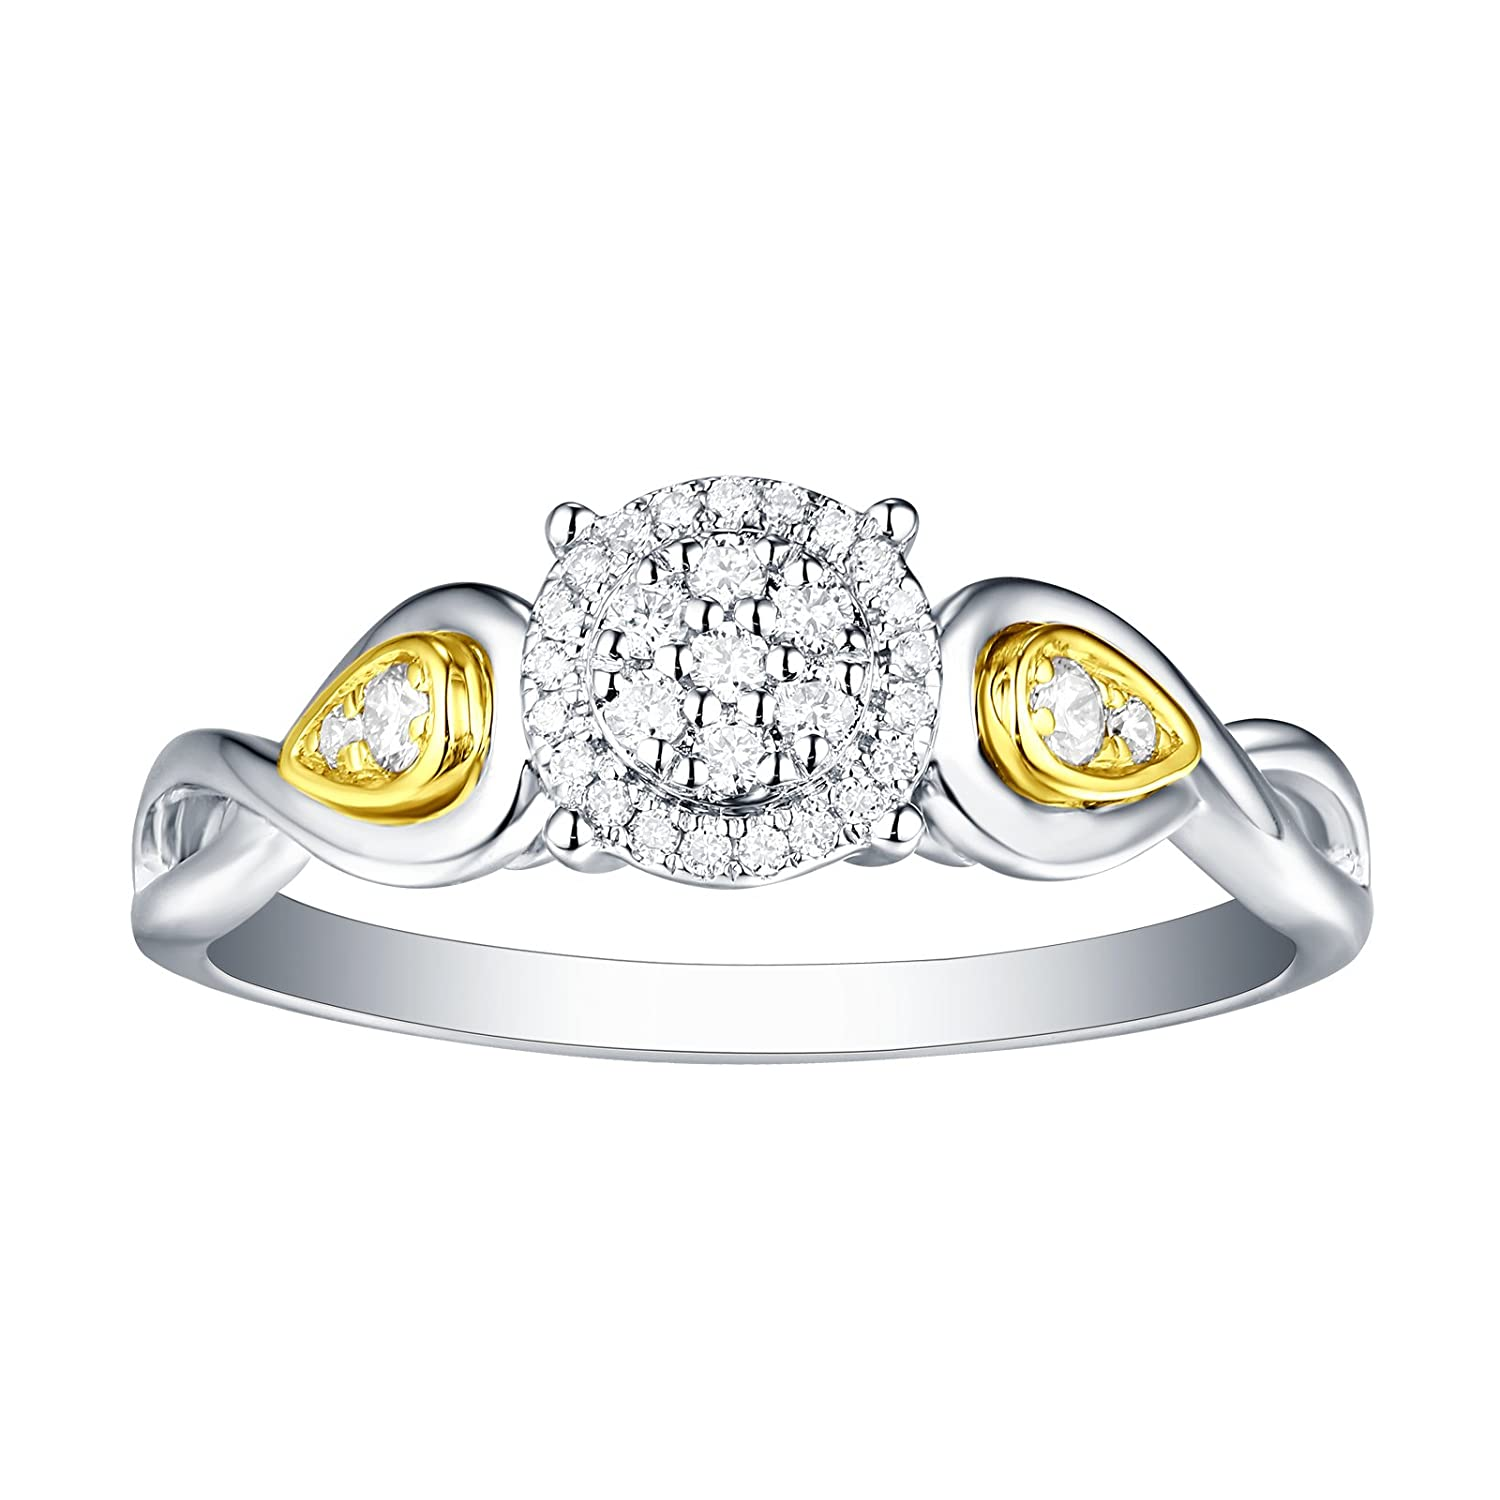 Prism Jewel 0.17Ct G-H//SI1 Natural Diamond Two-Tone Gold Engagement Ring